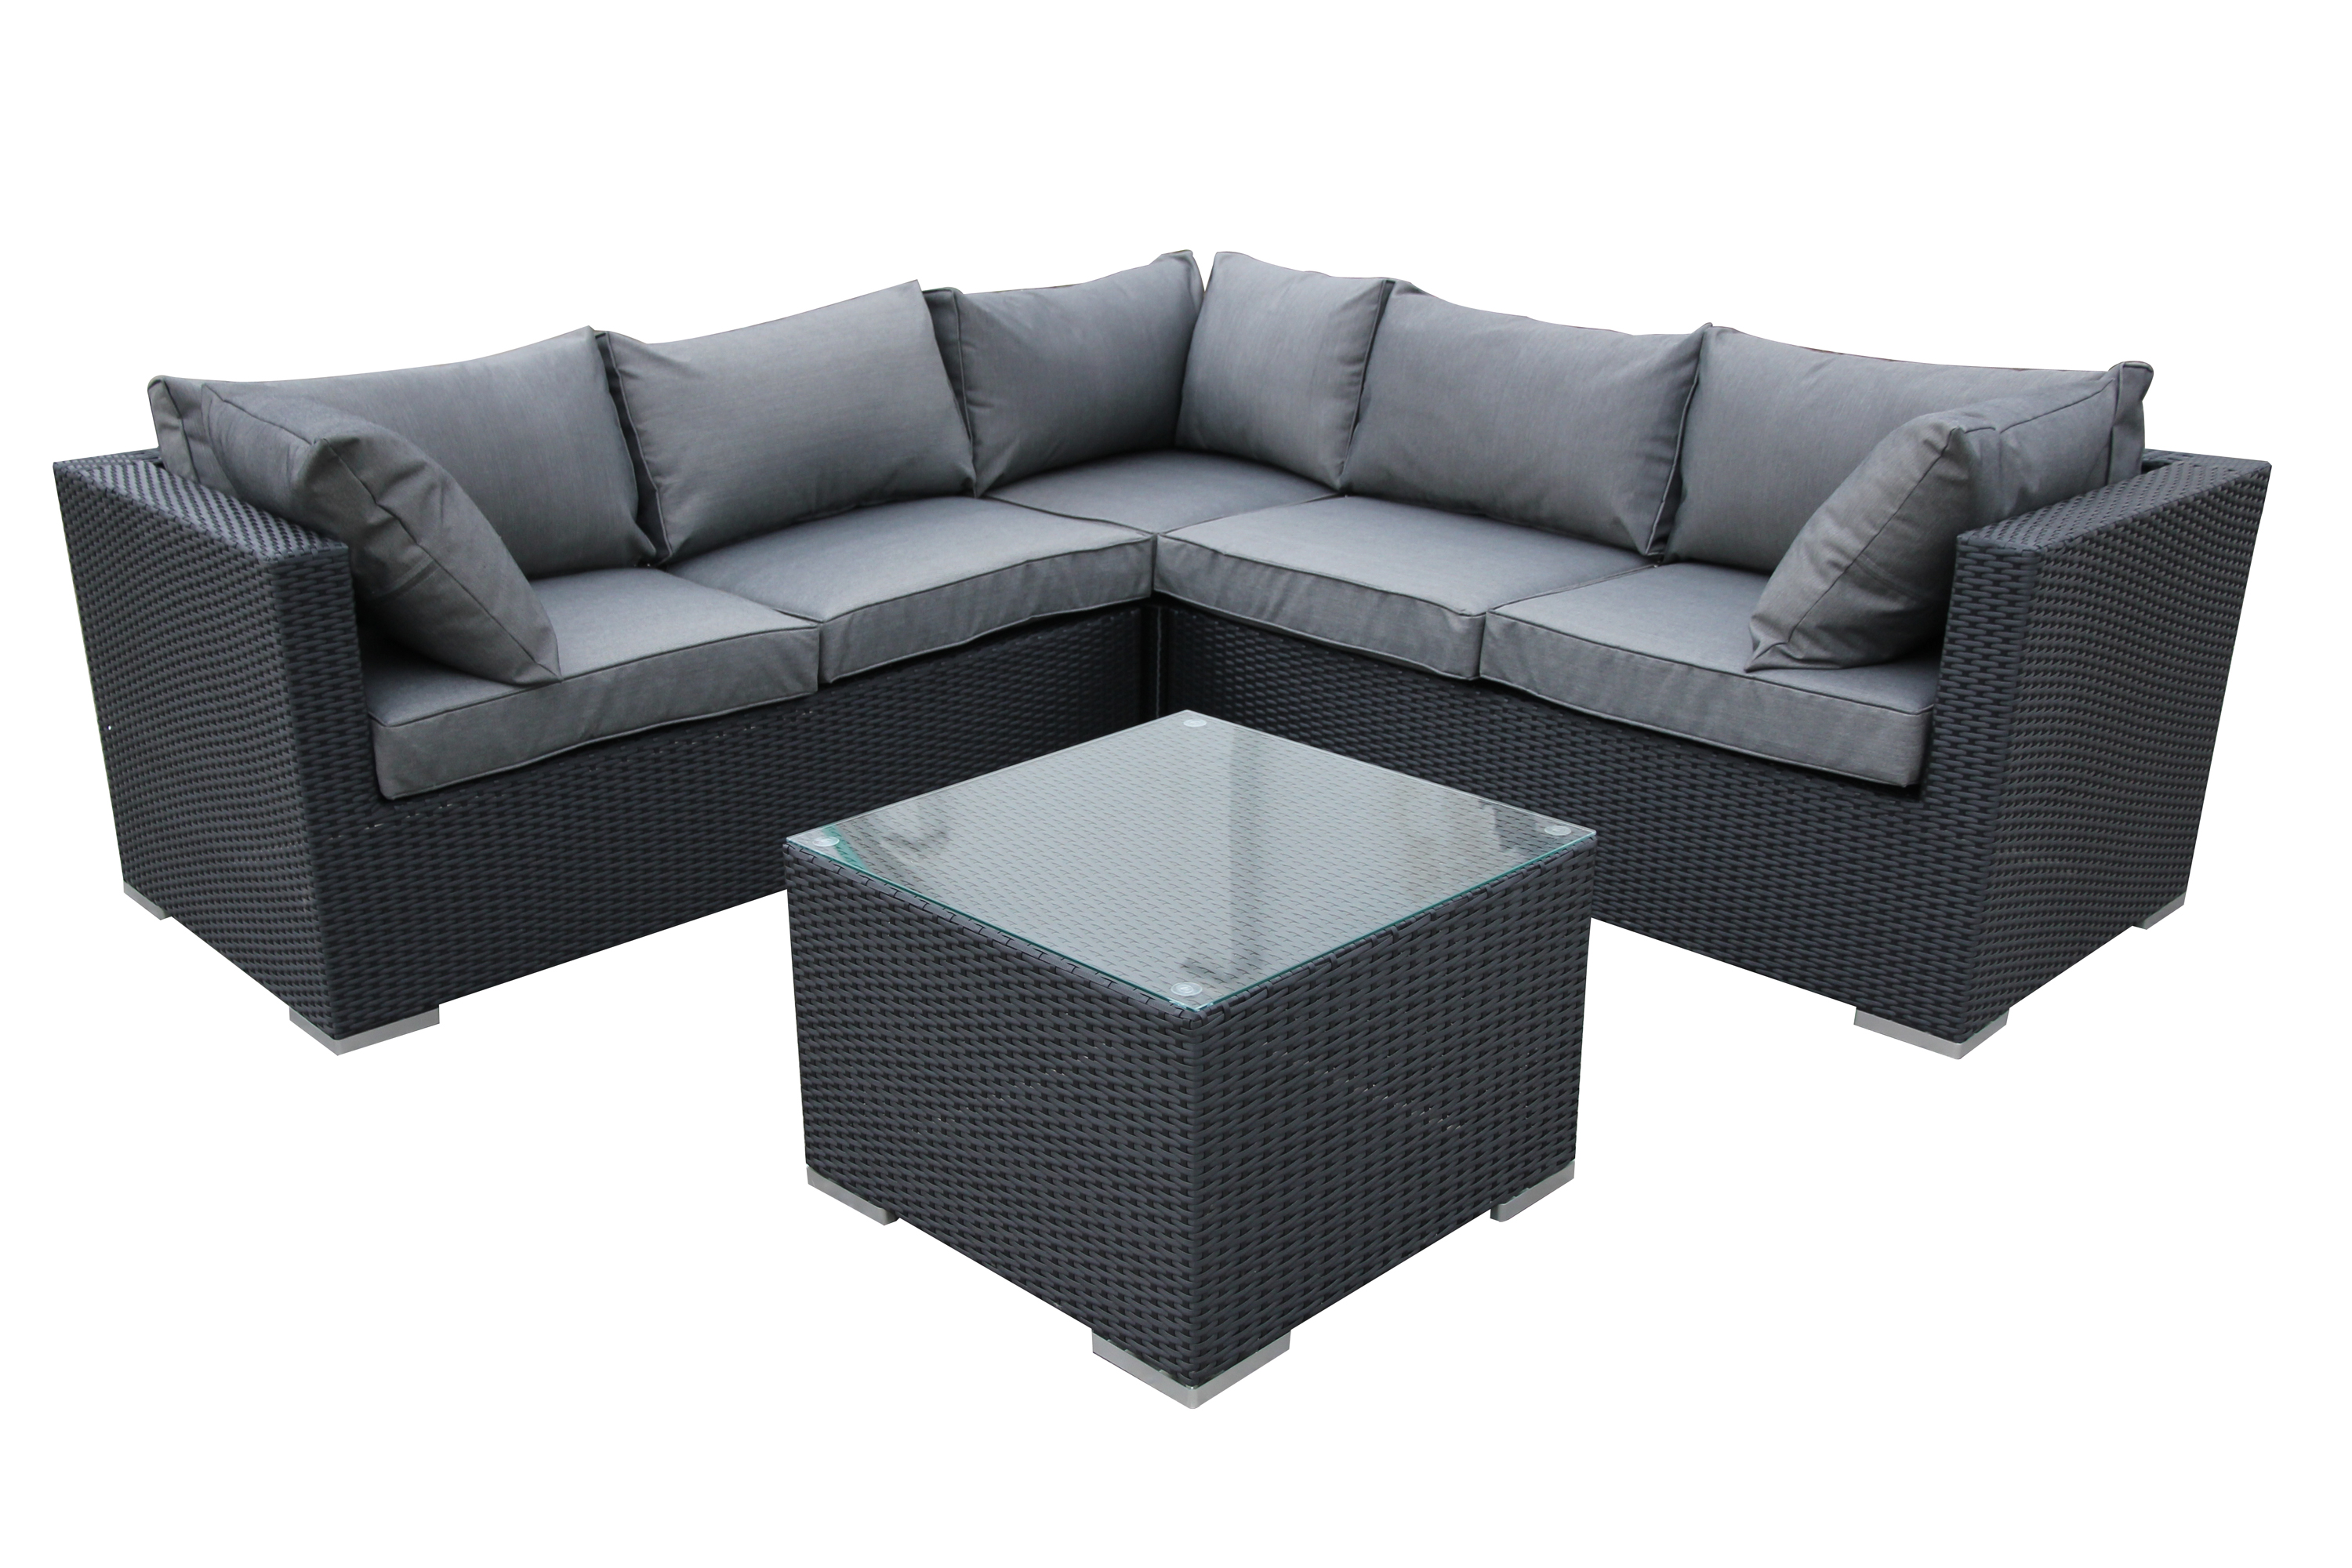 sunset seminyak wicker rattan sofa lounge outdoor garden 2 colours 4pc set ebay. Black Bedroom Furniture Sets. Home Design Ideas